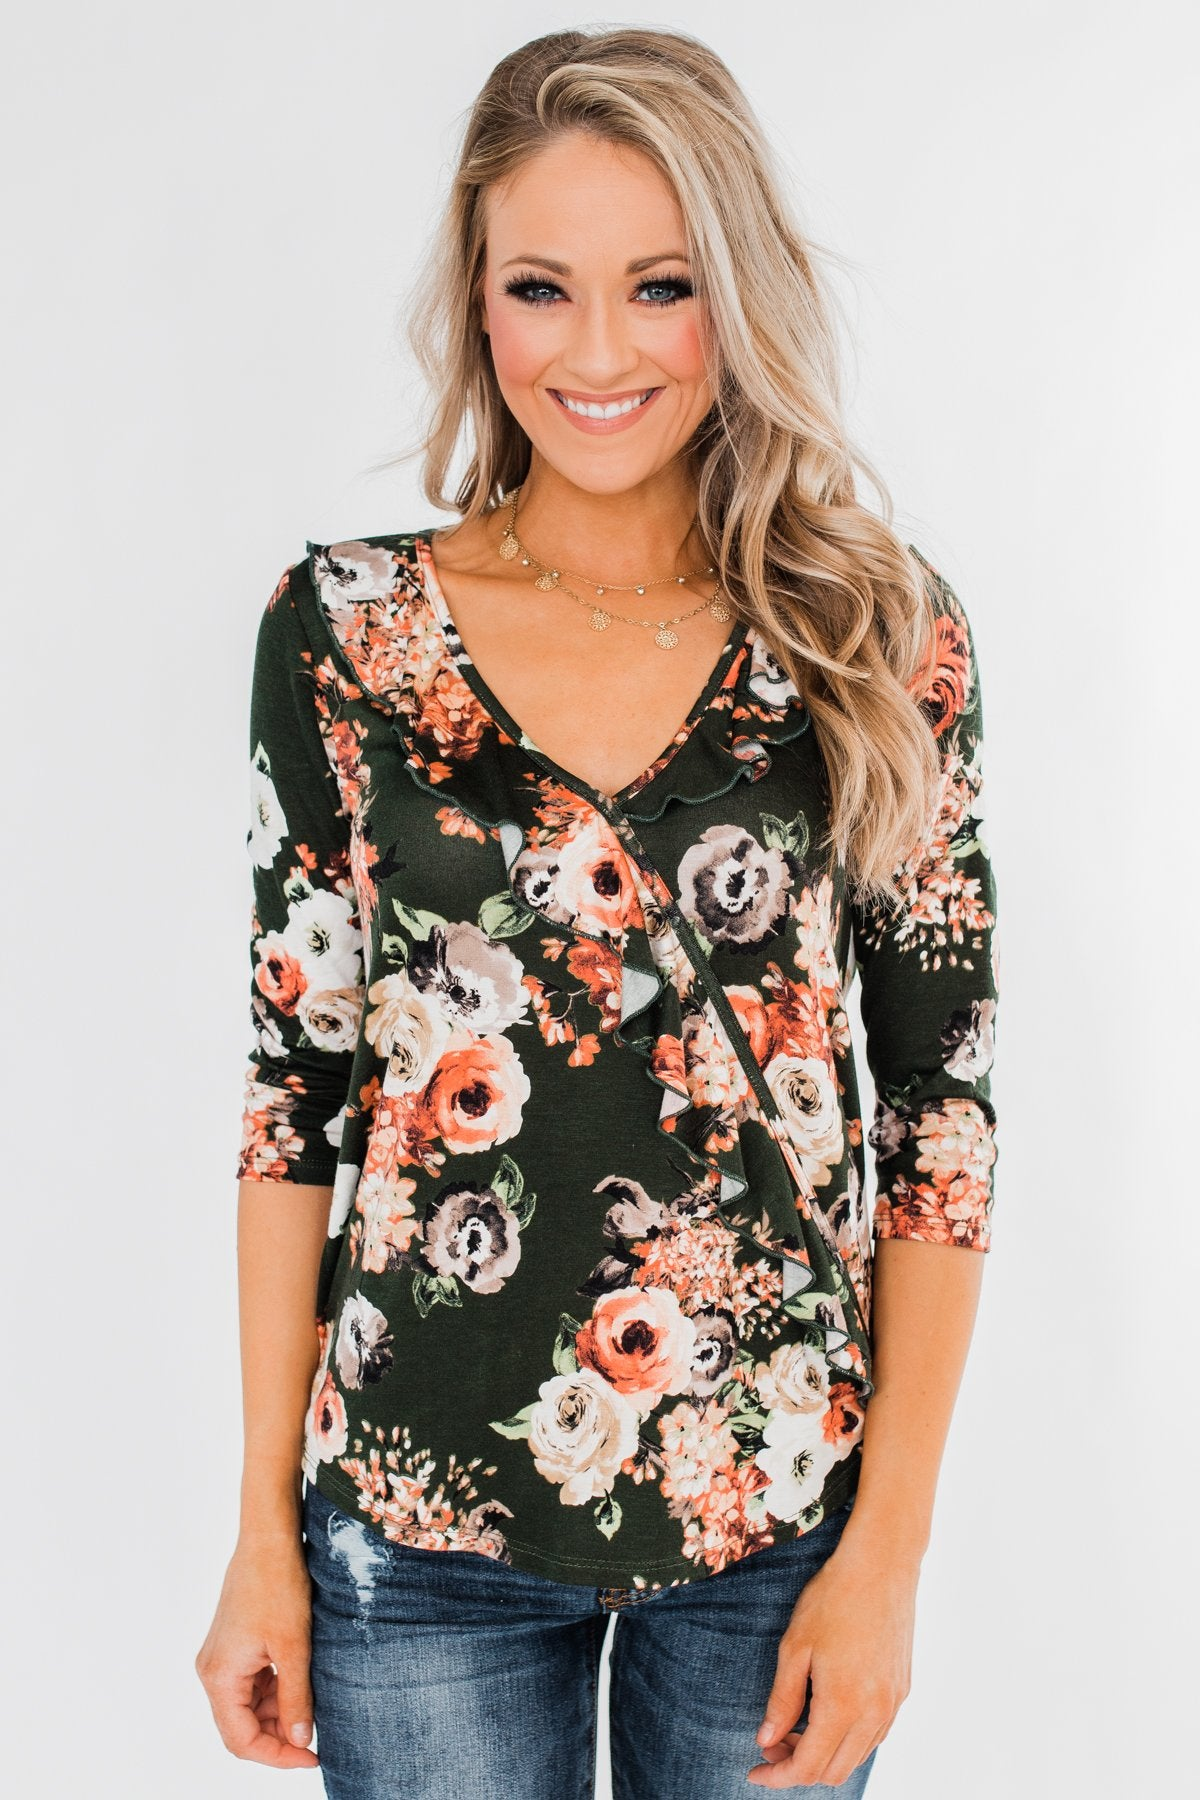 Good As You Floral and Ruffle 3/4 Sleeve Top- Olive